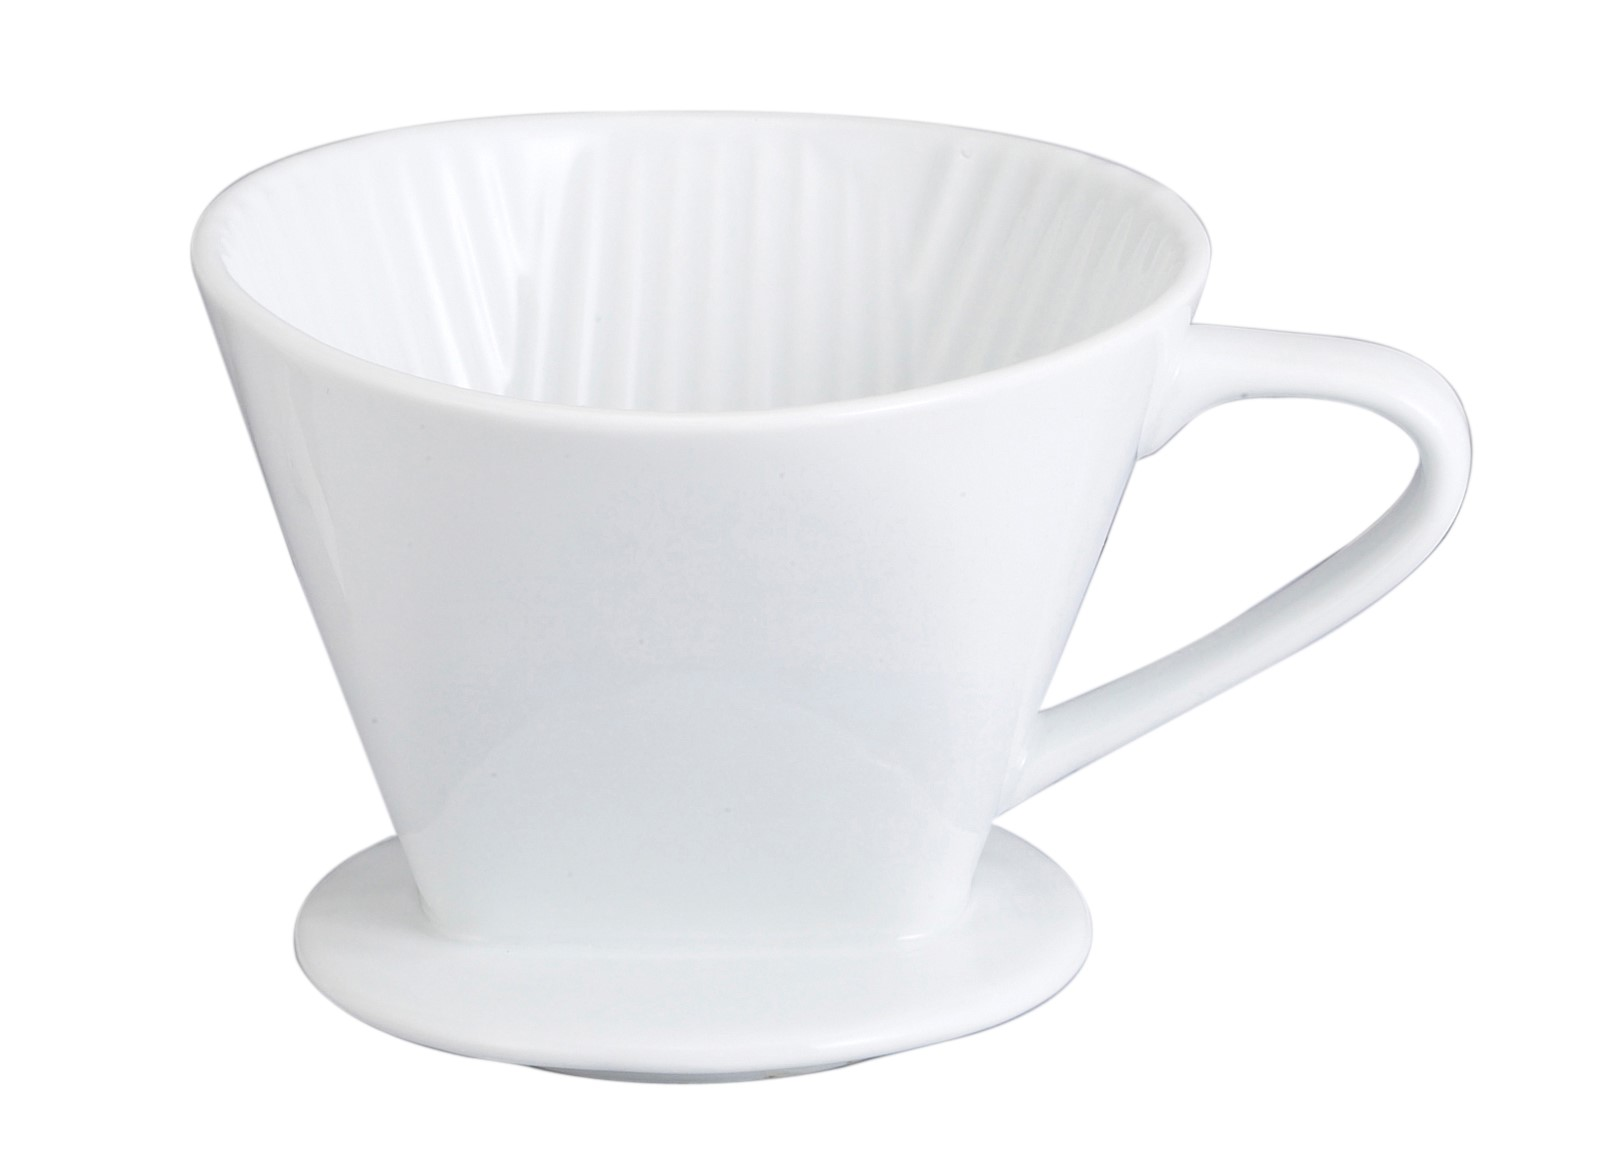 Coffee Filter Cone #4 by Harold Import Company